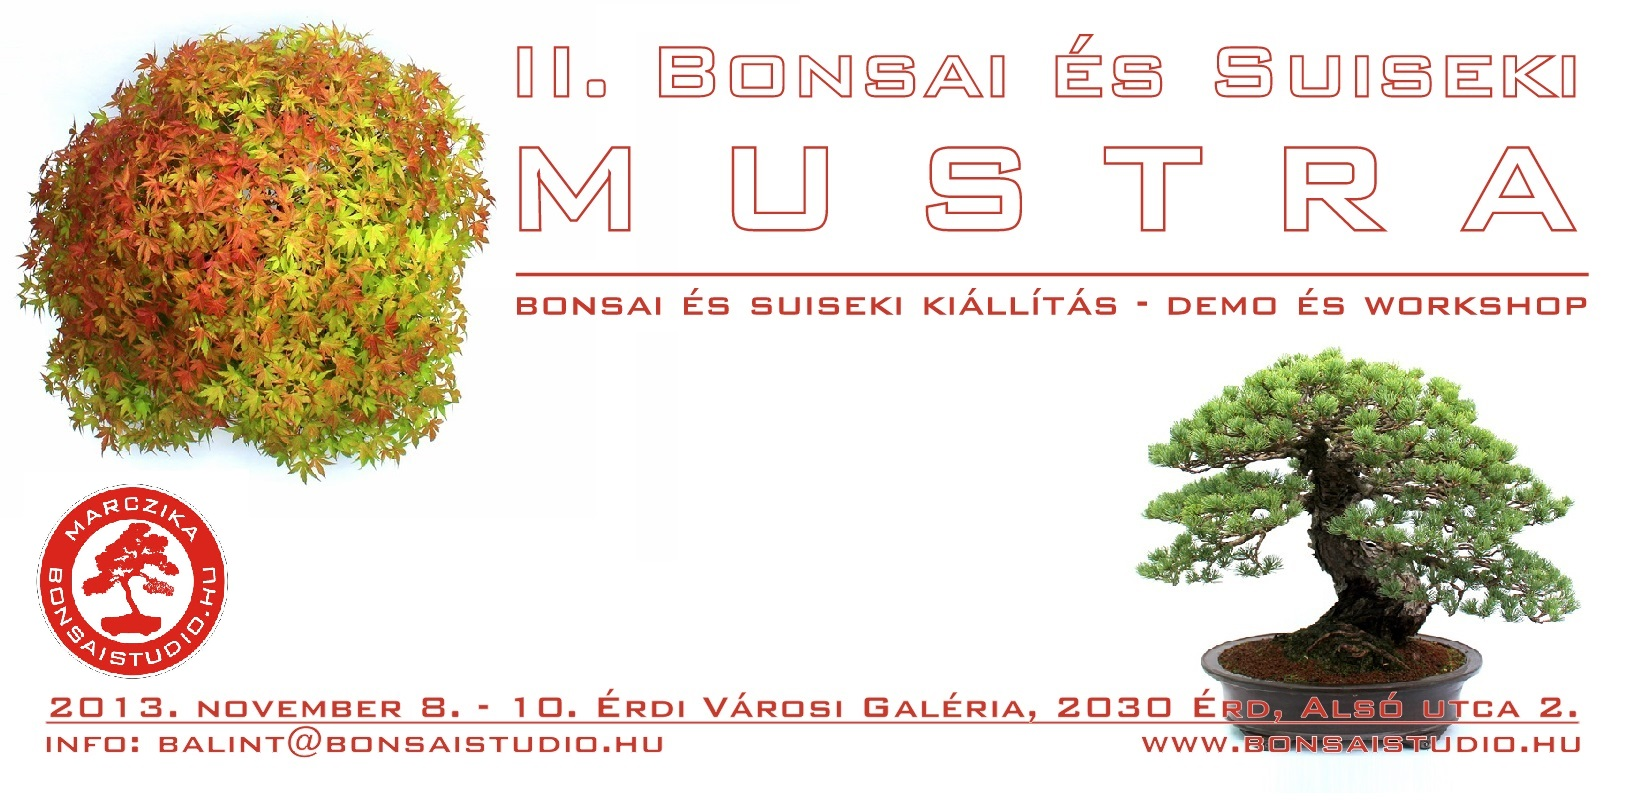 bonsai es suiseki mustra kiallitas demo workshop a marczika bonsai studio rendezvenye